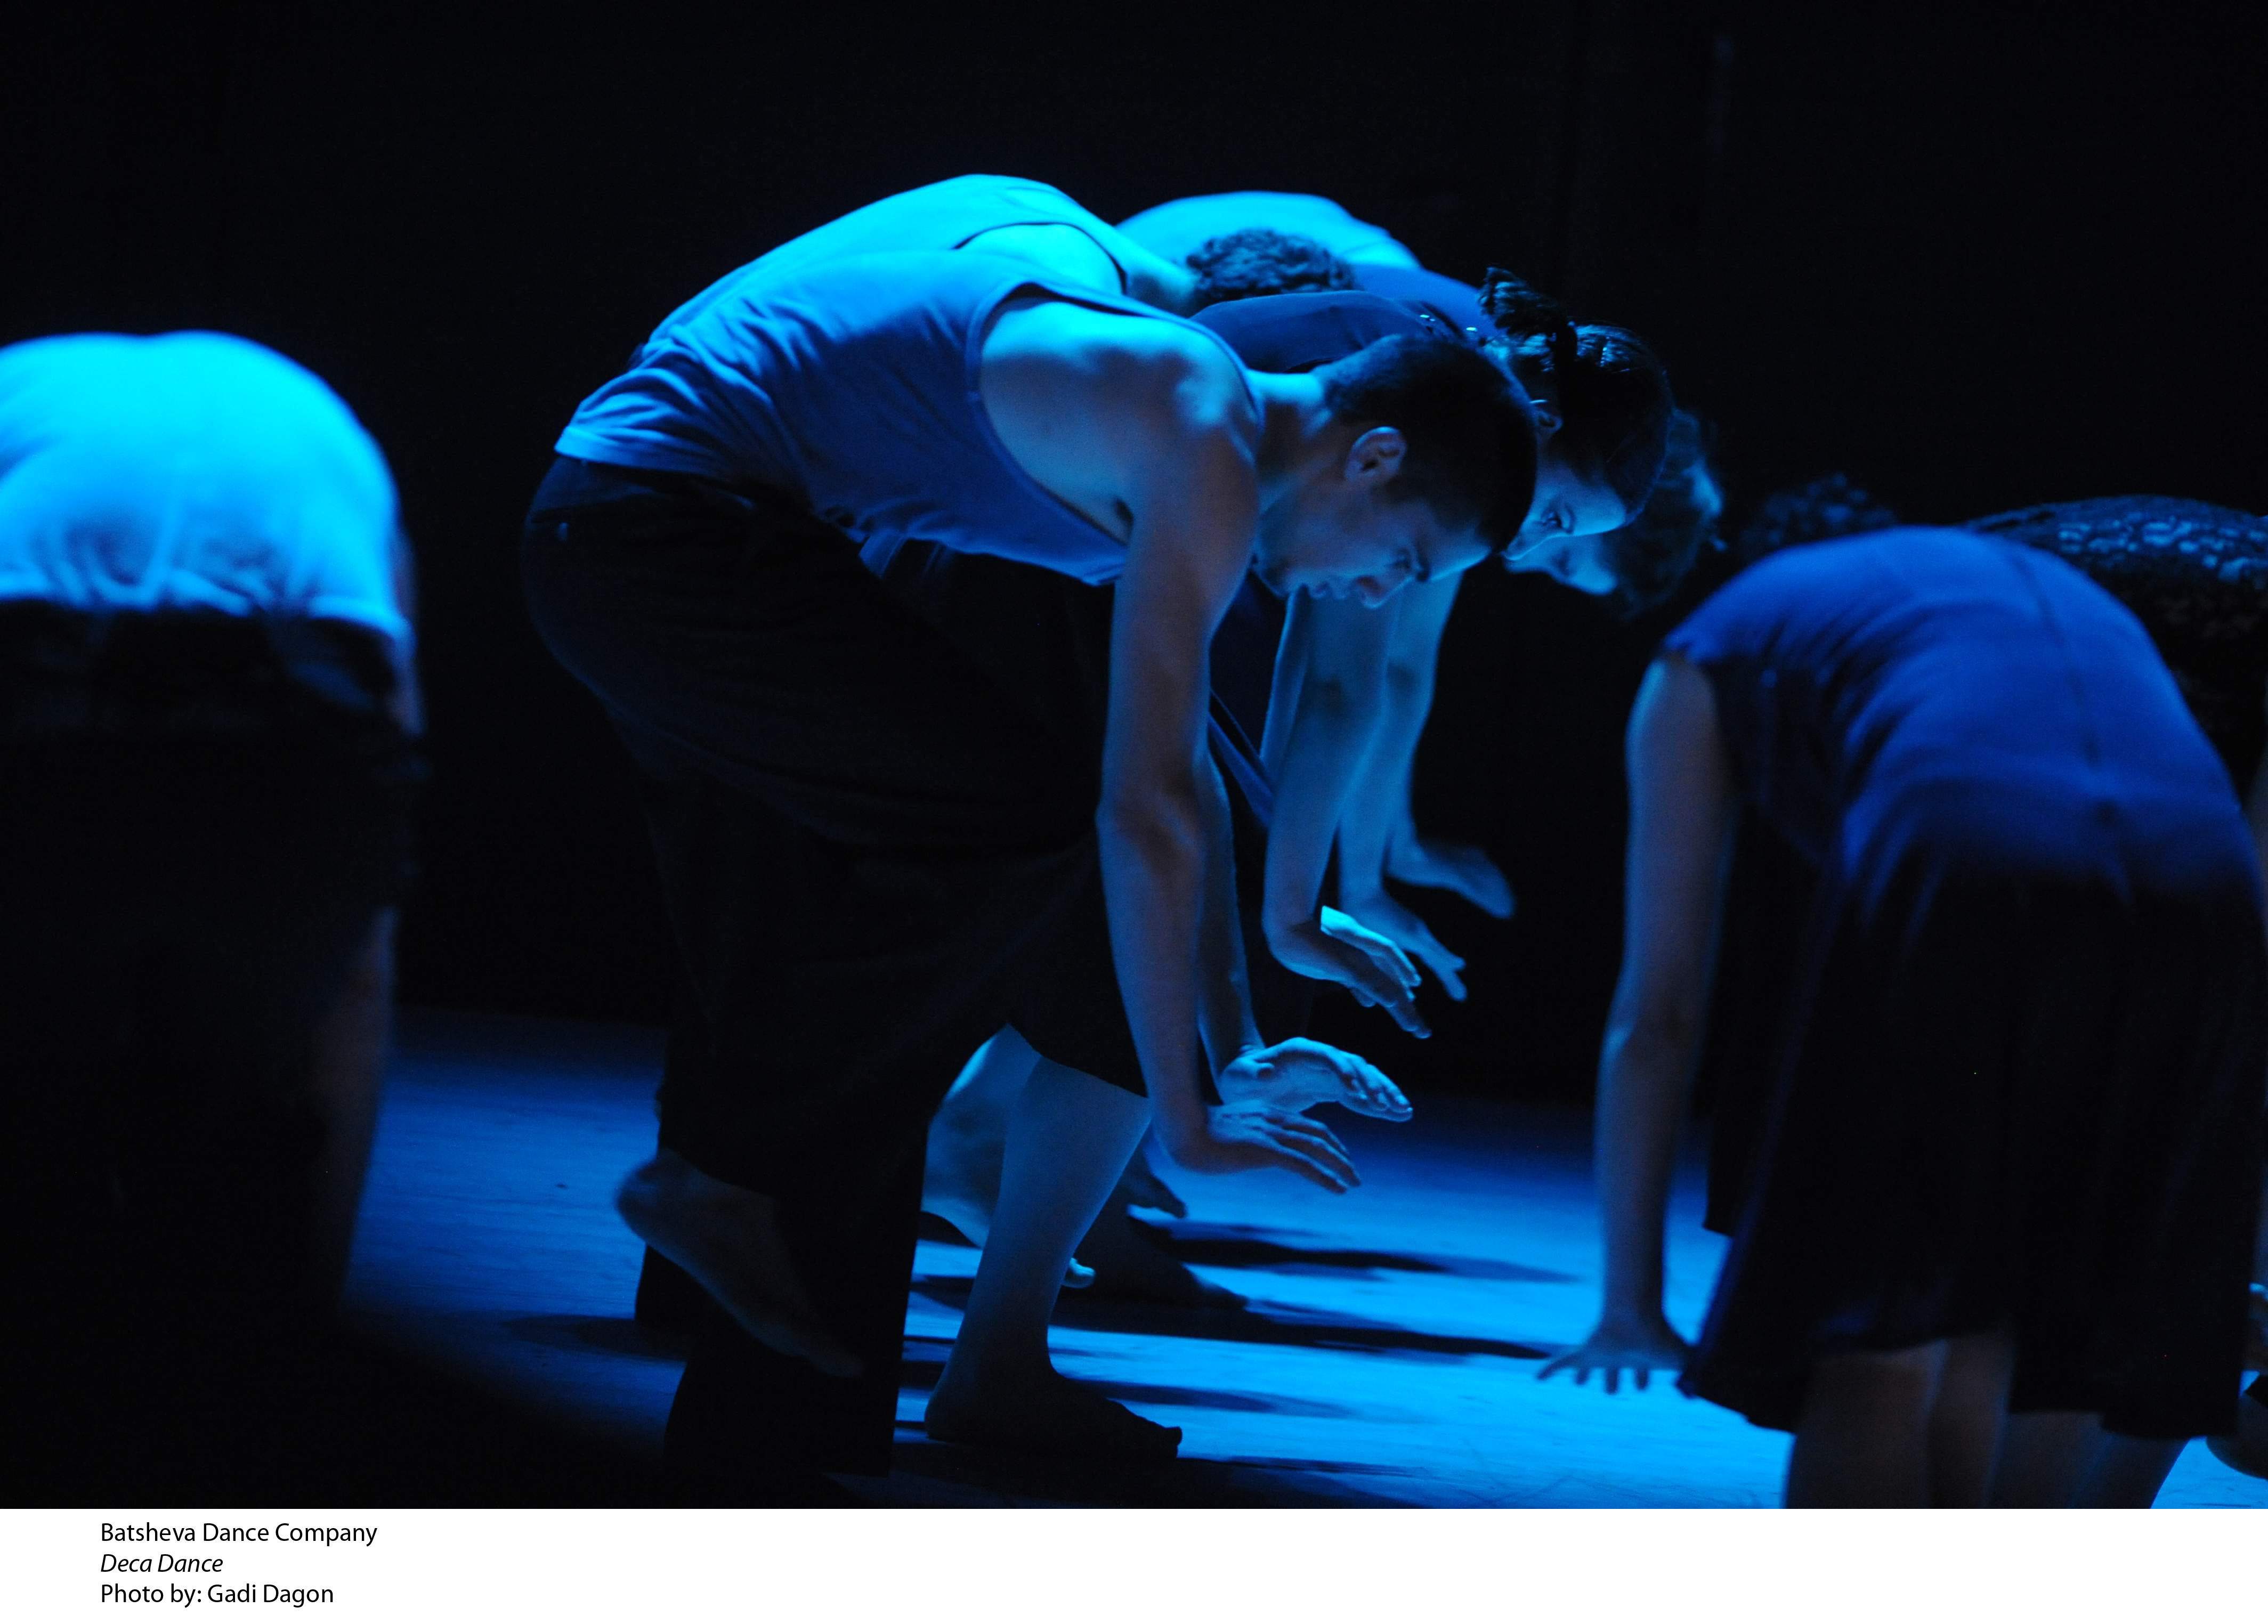 from_deca_dance_by_ohad_naharin1